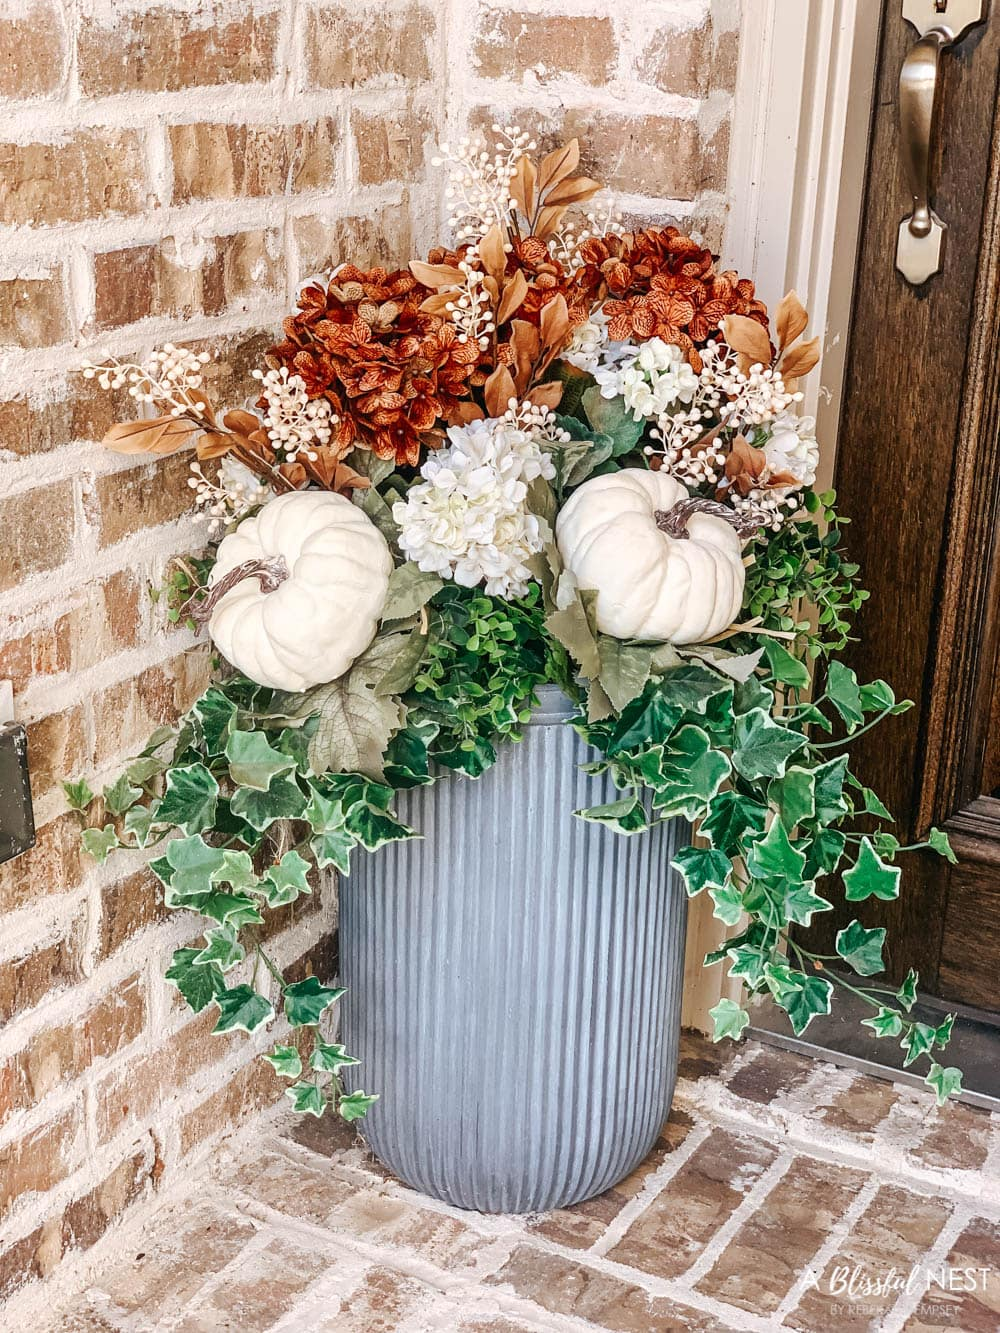 Small Porch Fall Decorating Ideas with Hobby Lobby   A Blissful Nest